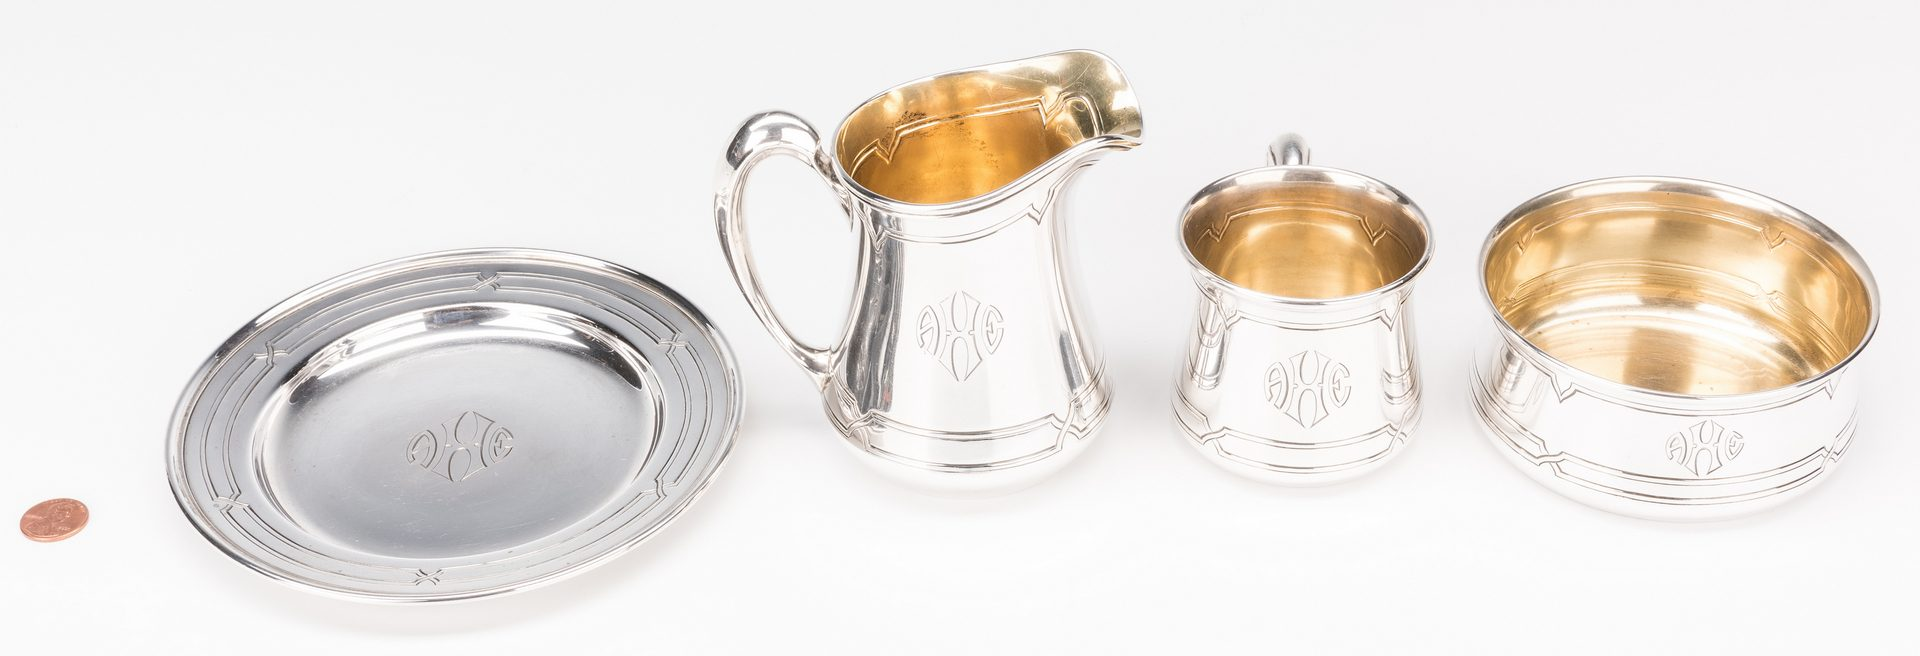 Lot 583: Rare 4 pc Art Deco Sterling Child's Set